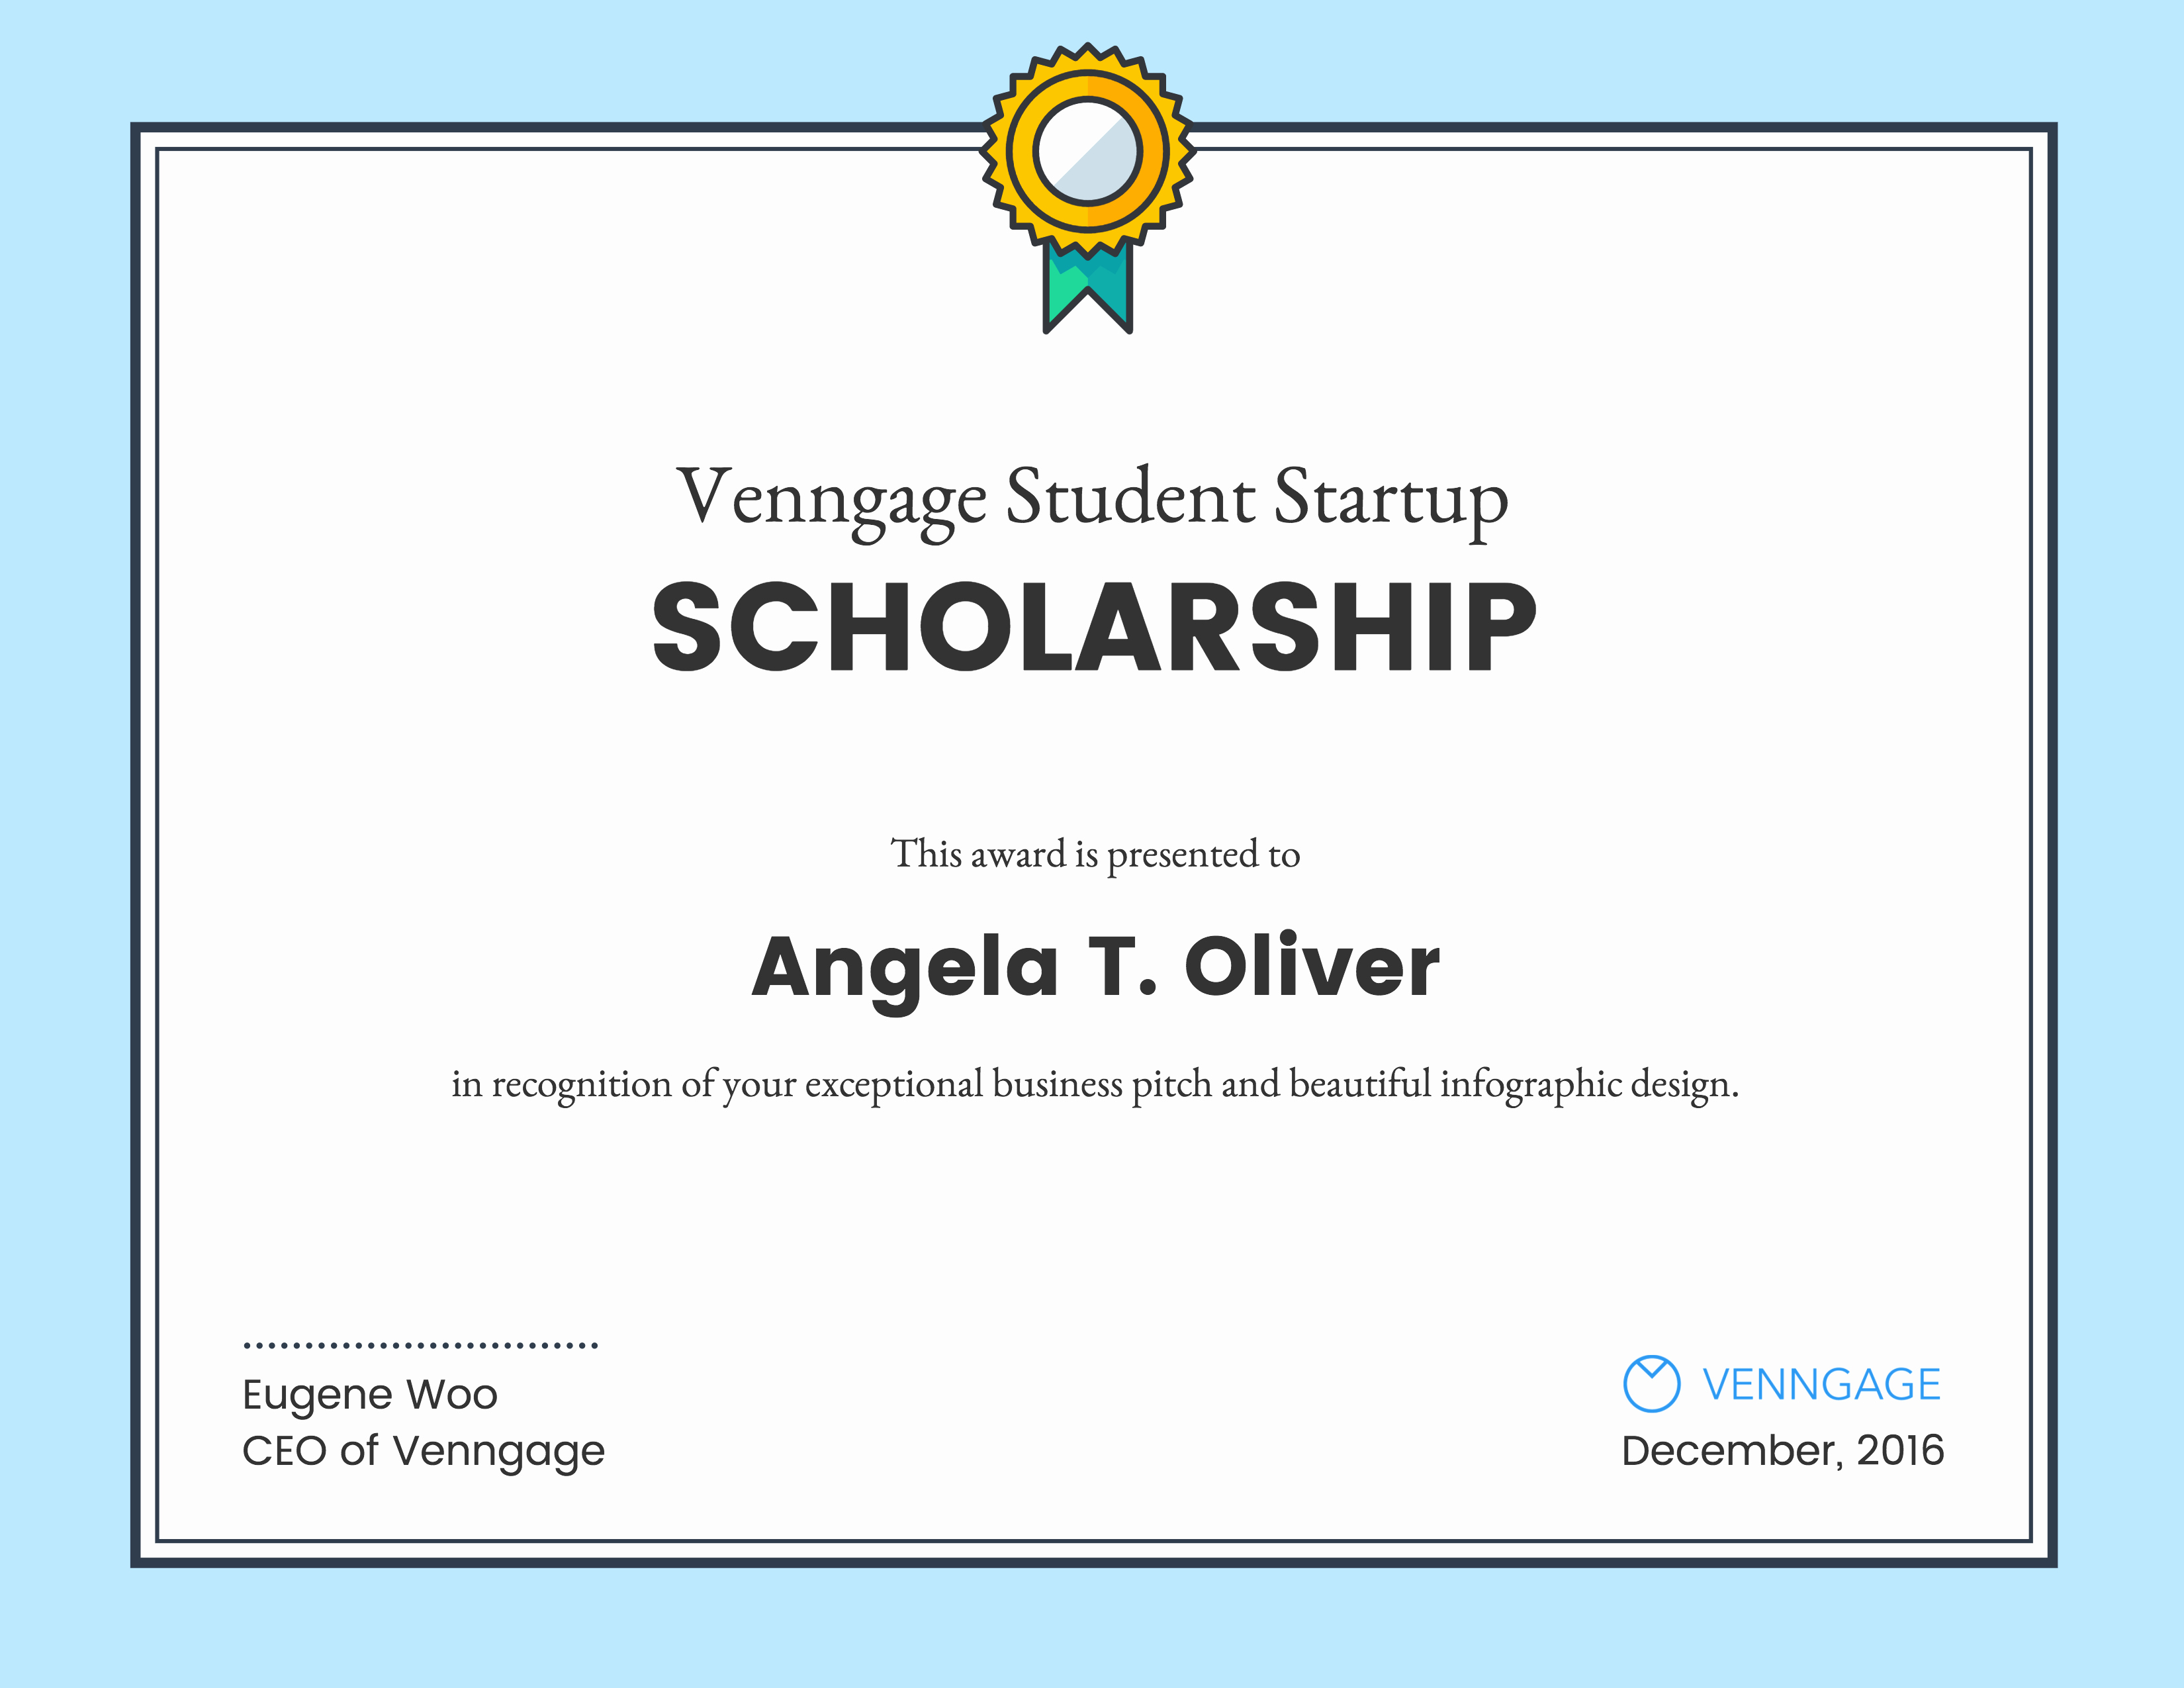 Scholarship Award Certificate Templates New Venngage Student Scholarship Winners Venngage